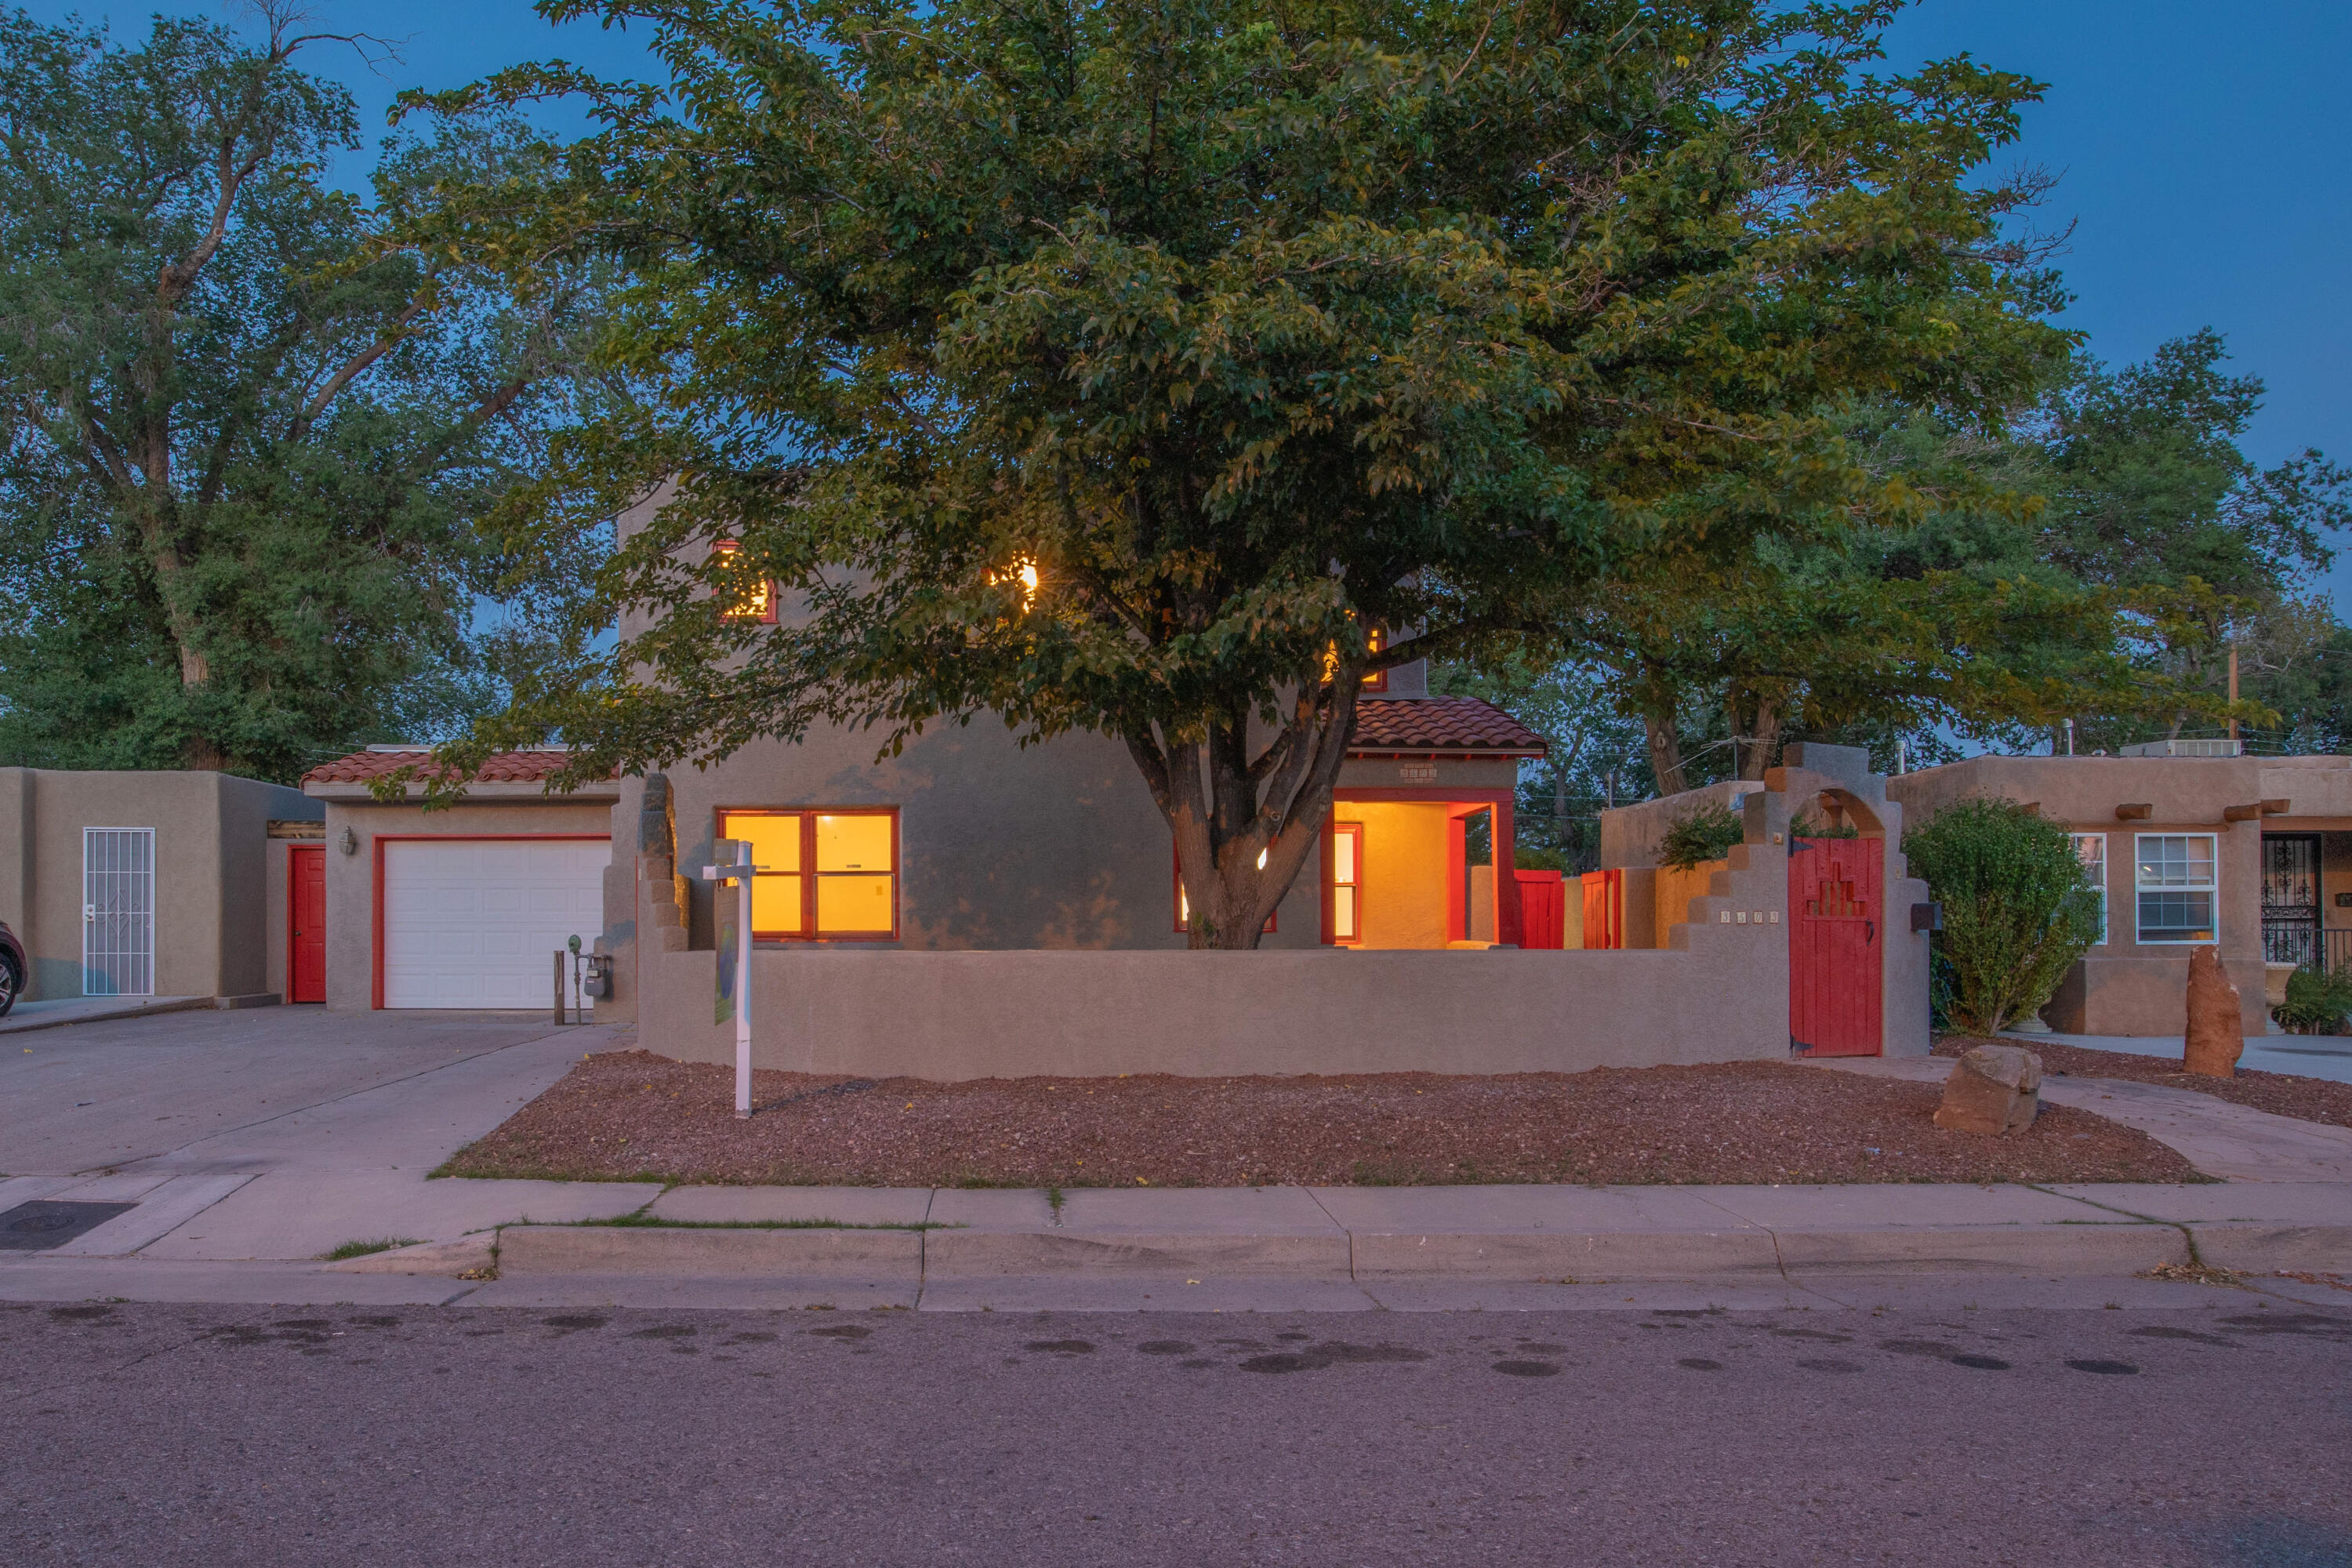 This Nob Hill Gem has had a complete makeover! From the new TPO roof, to the refinished original wood floors, and nearly everything in between. Features include new and newer stainless appliances, granite counters, refrigerated air, and more. Artists, musicians, yogis... there's a 370 sq ft heated studio/guest room with murphy bed in the back (sqft incl in total). The large office upstairs is an excellent set up for live/work. A wonderful landscaped backyard features a coveted inground gunite pool, rare for this area, watched over by mermaids. The location can't be beat. Steps away from the action on Nob Hill and dining, shopping, a show, or class, yet off the beaten path on a block shared by just a few neighbors. You know you want to live here! Come home before someone else does!